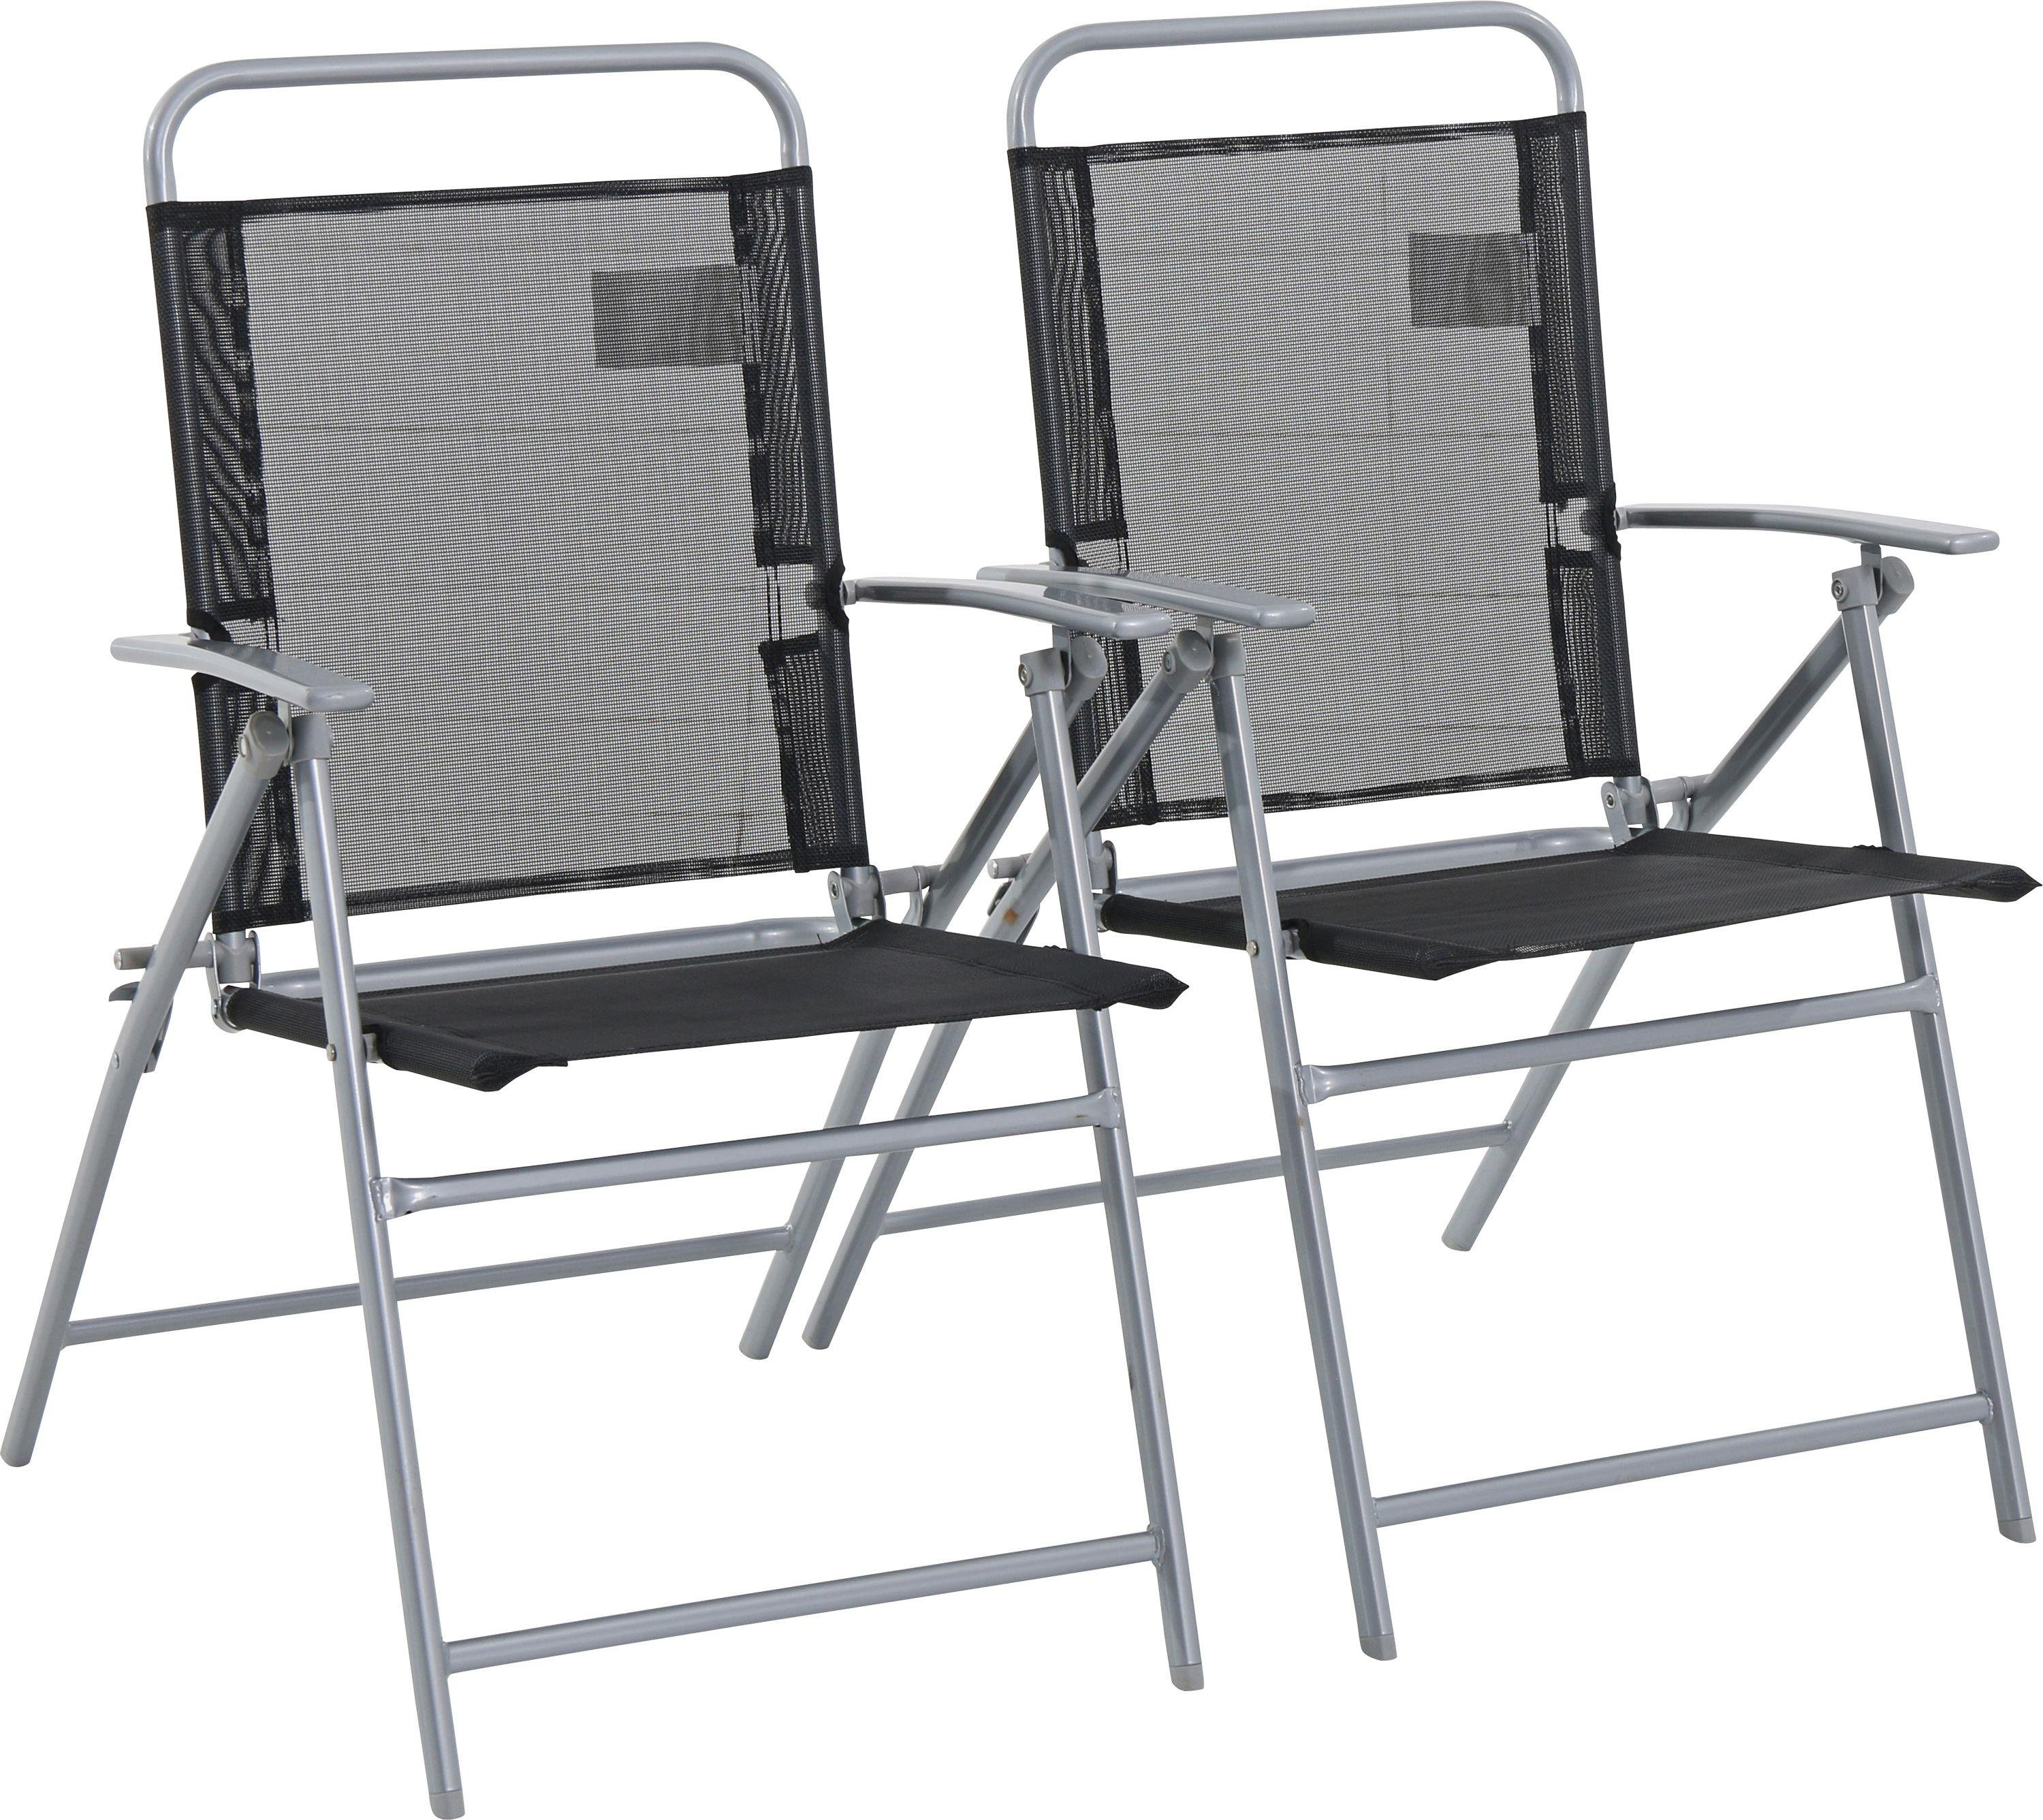 Argos Home - Steel Folding Chairs - Set of 2